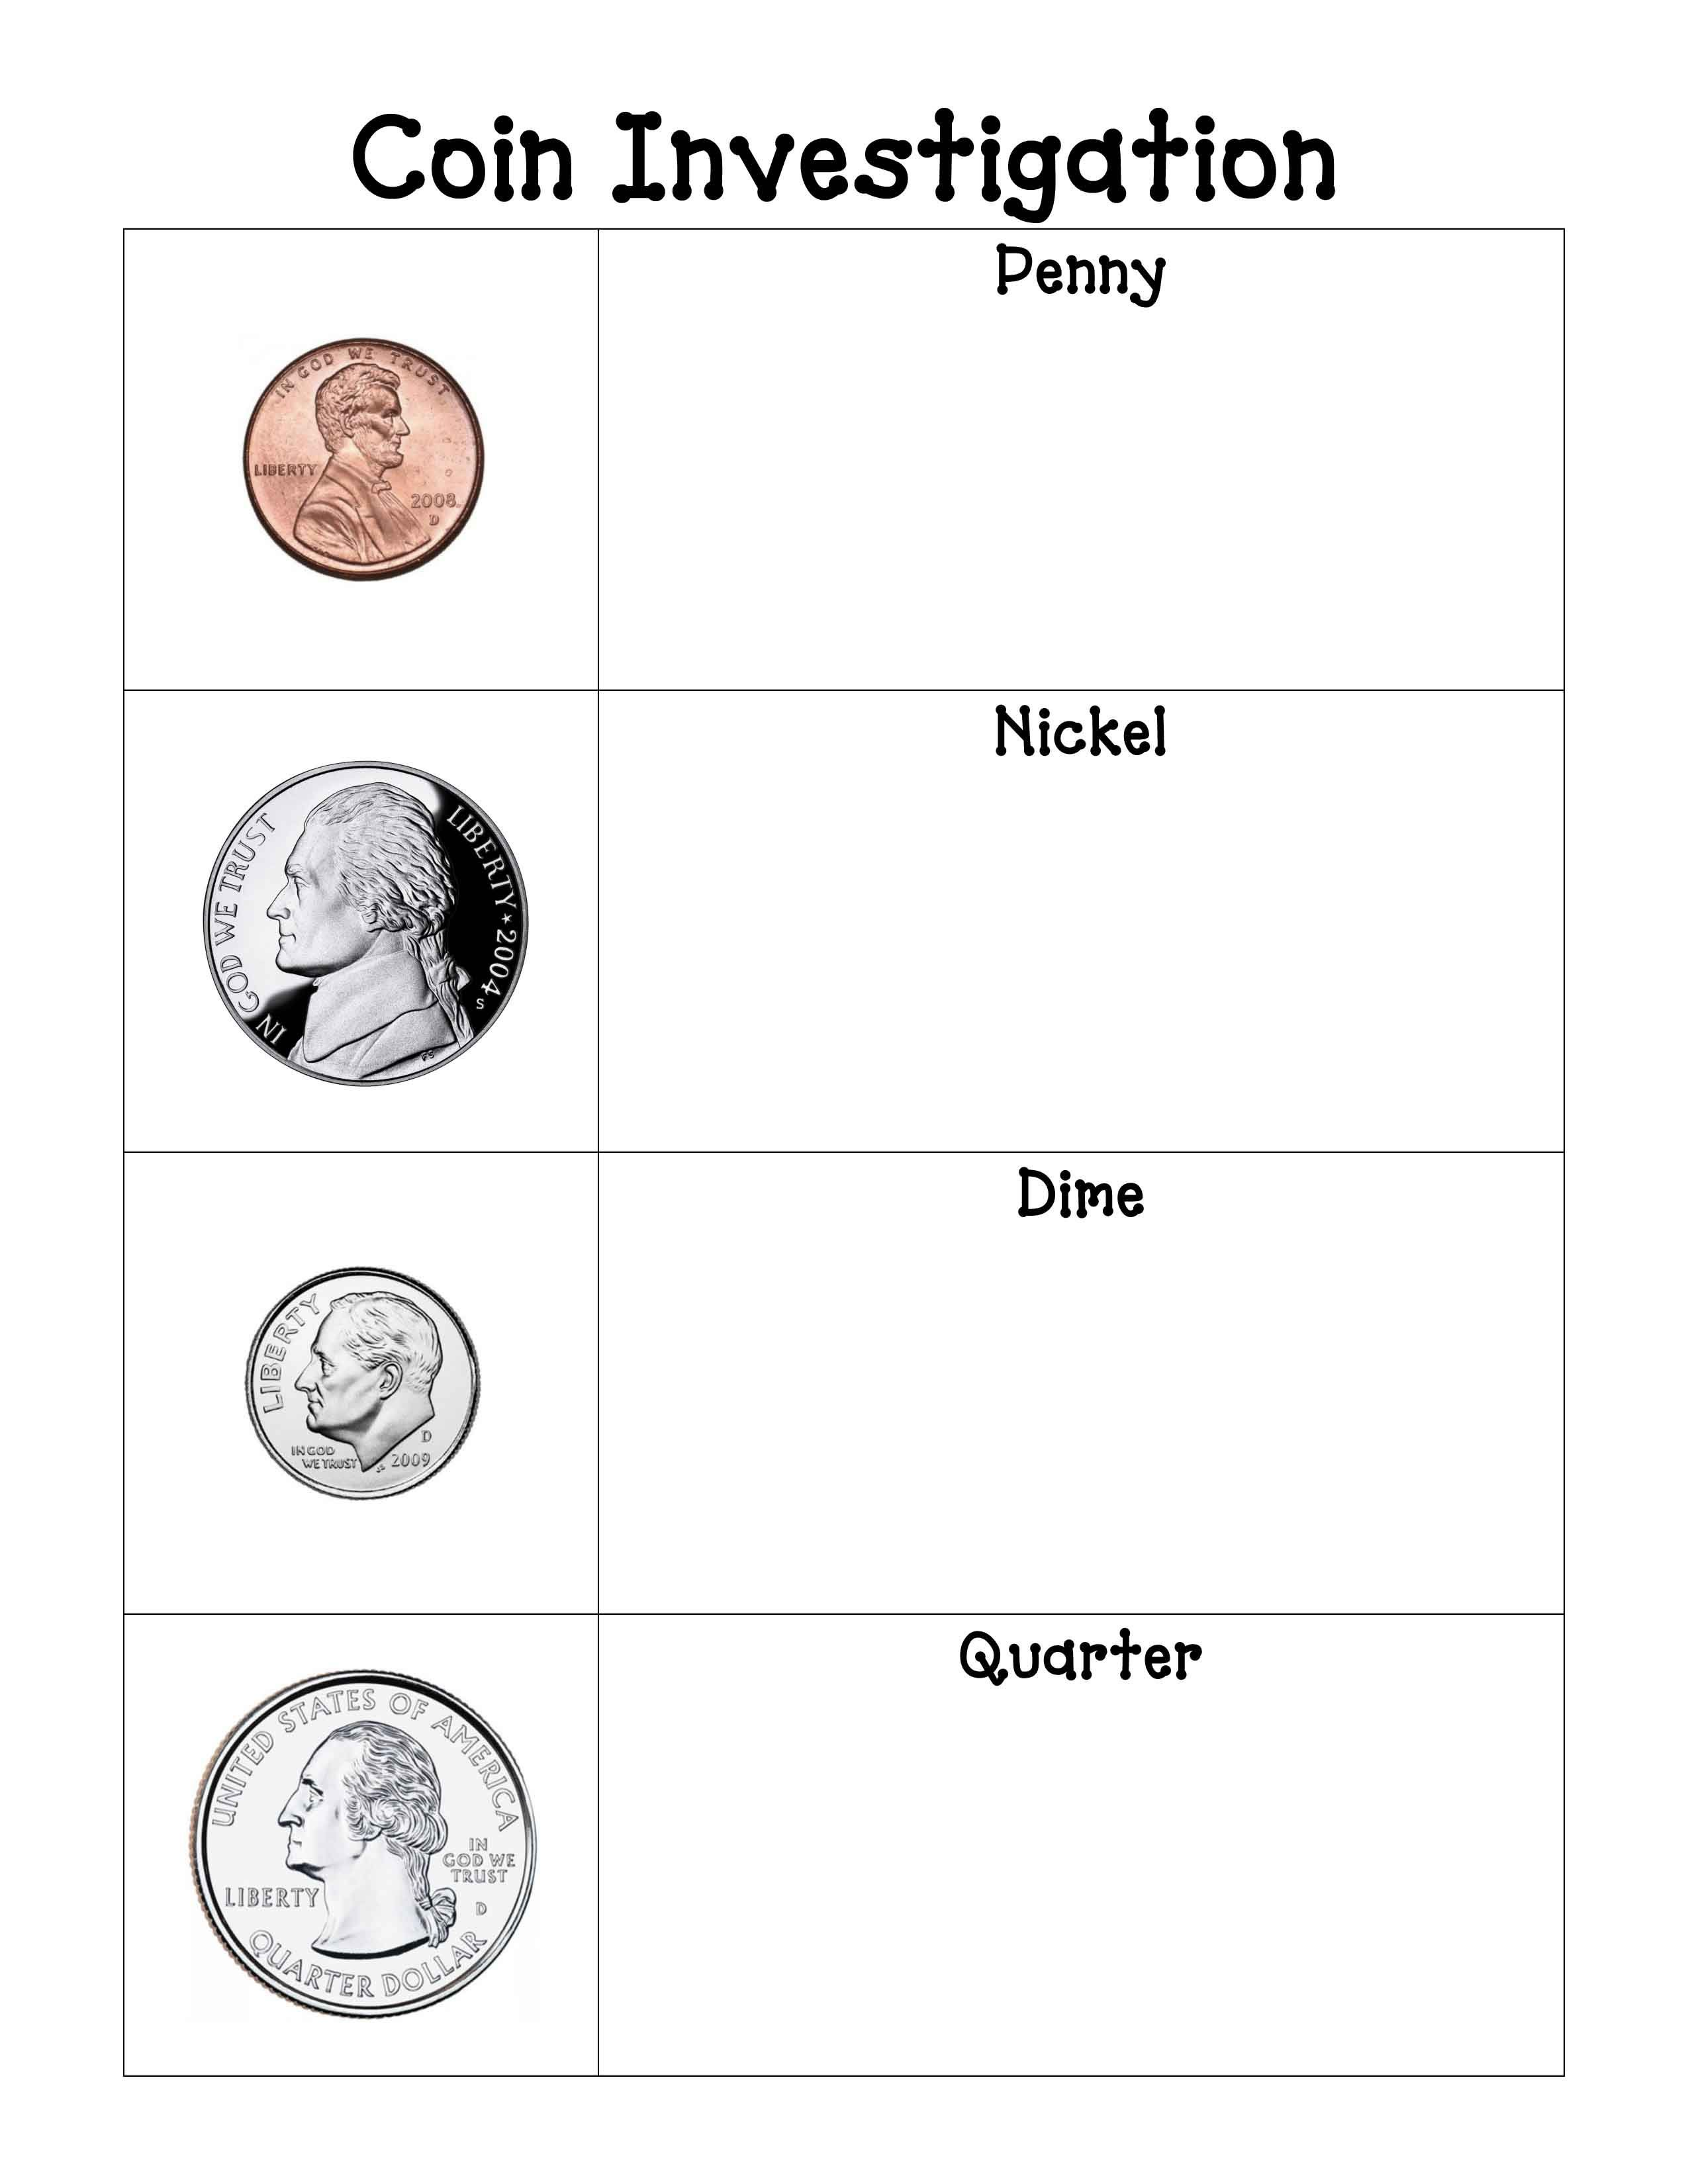 Blank Sheet For Observations On Each Coin And A Sheet For Coin Rubbings Free Downloads